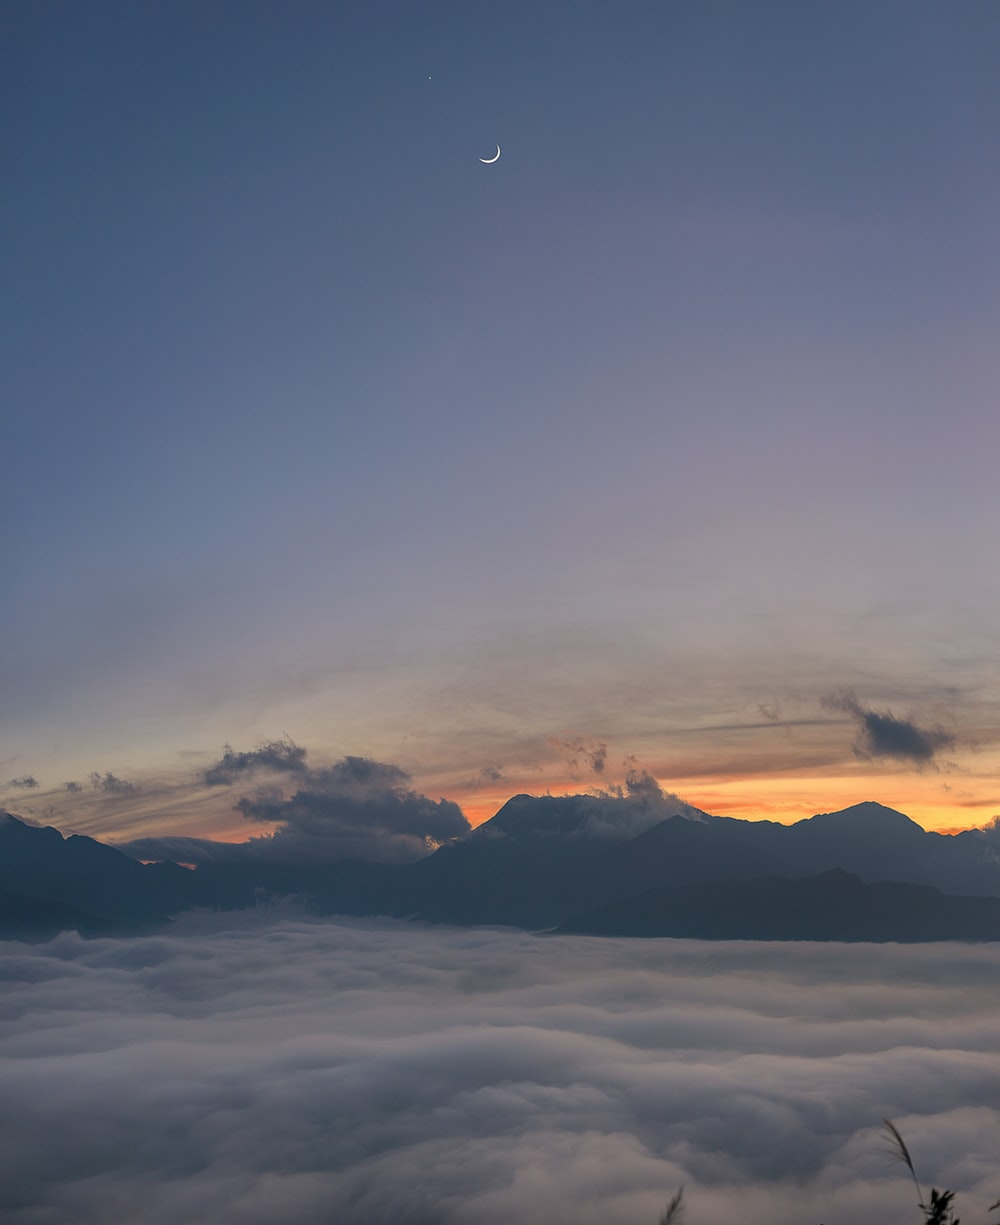 white crescent moon on blue sunset sky with clouds hovering below